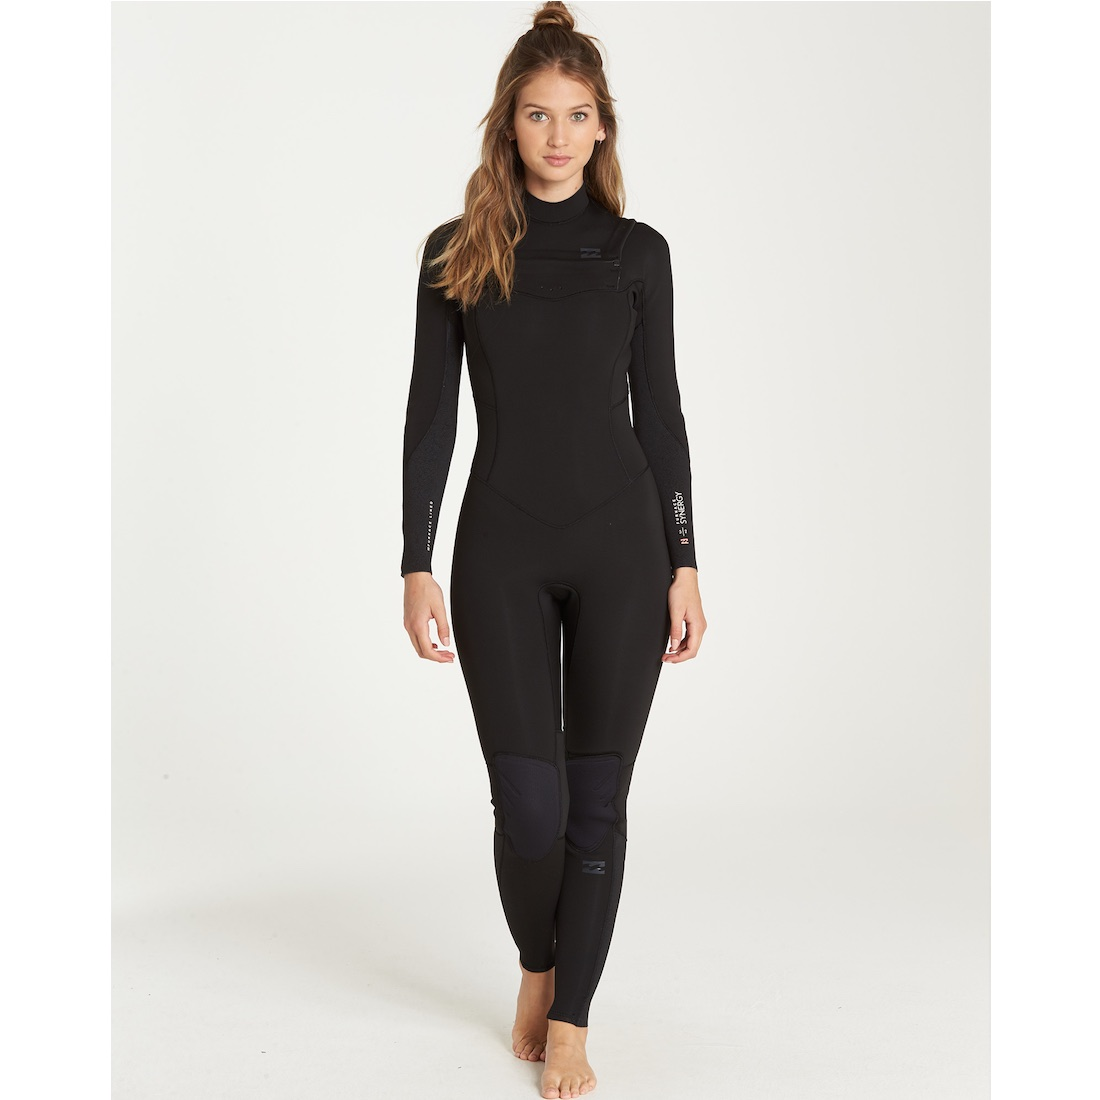 d7990c1ff0 billabong slate black chest zip Ladies womens girls winter wetsuit surf  surfing 5 4 5